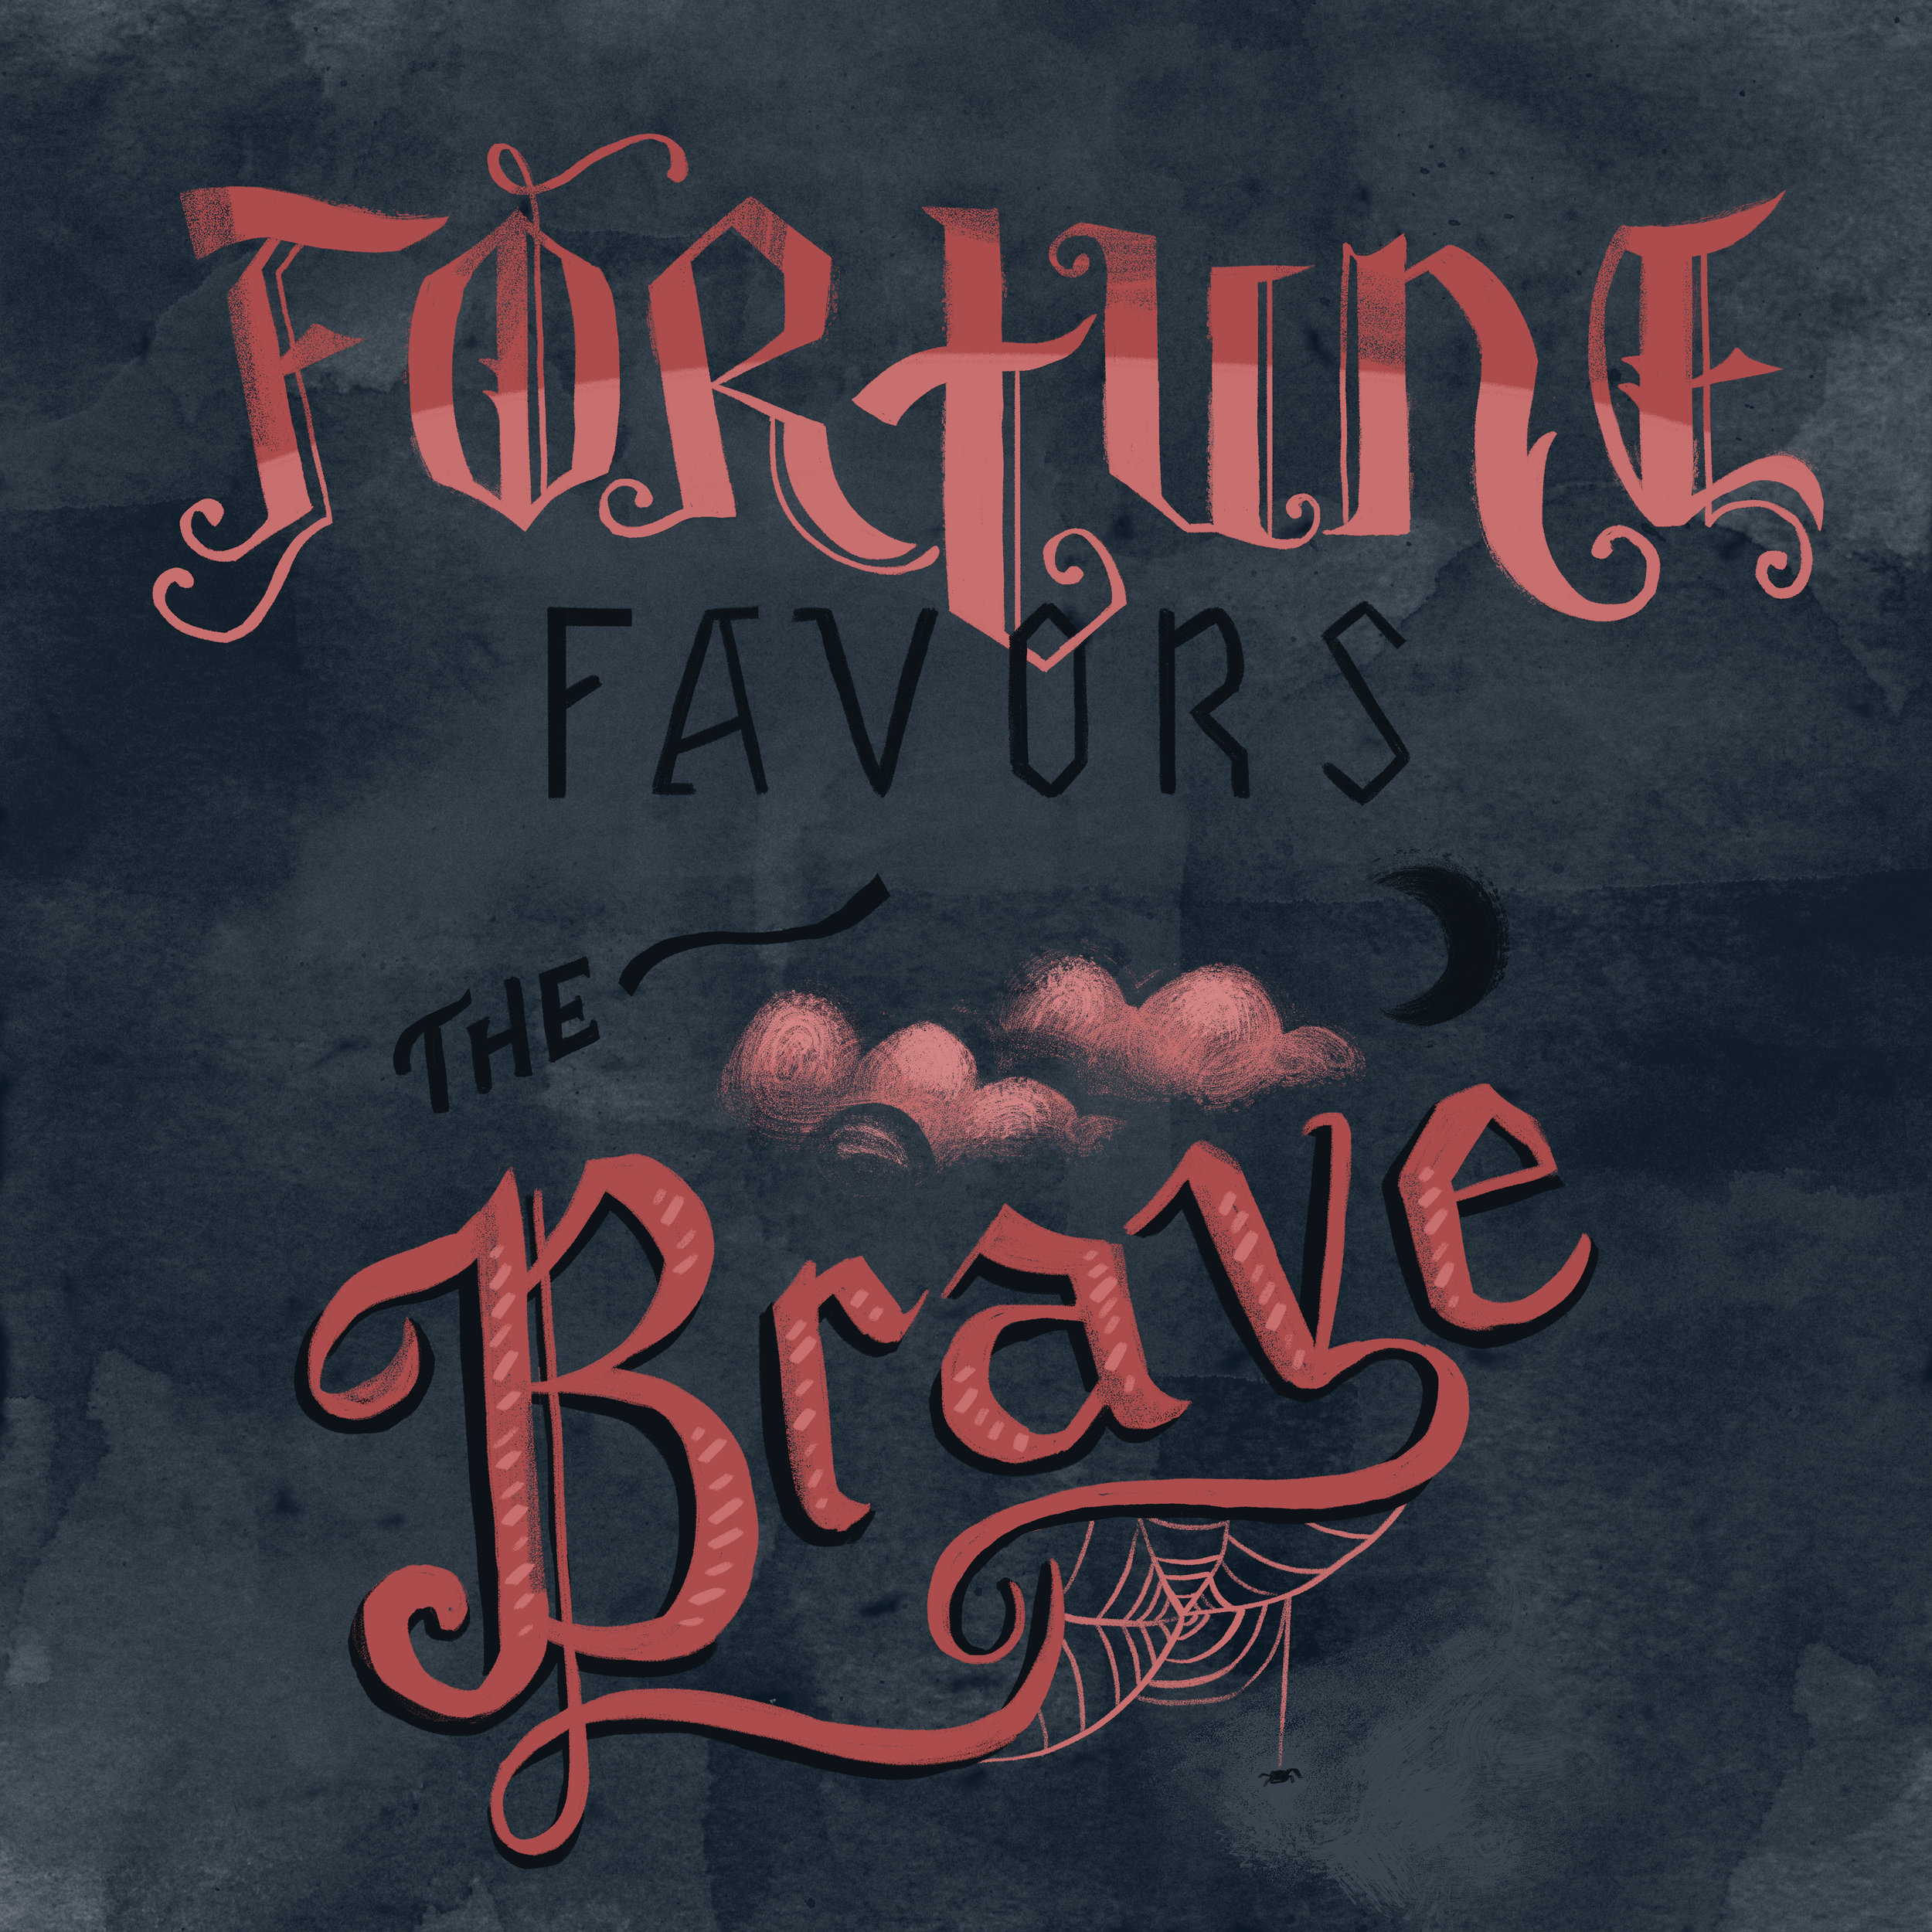 Fortune Favors the Brave.jpg